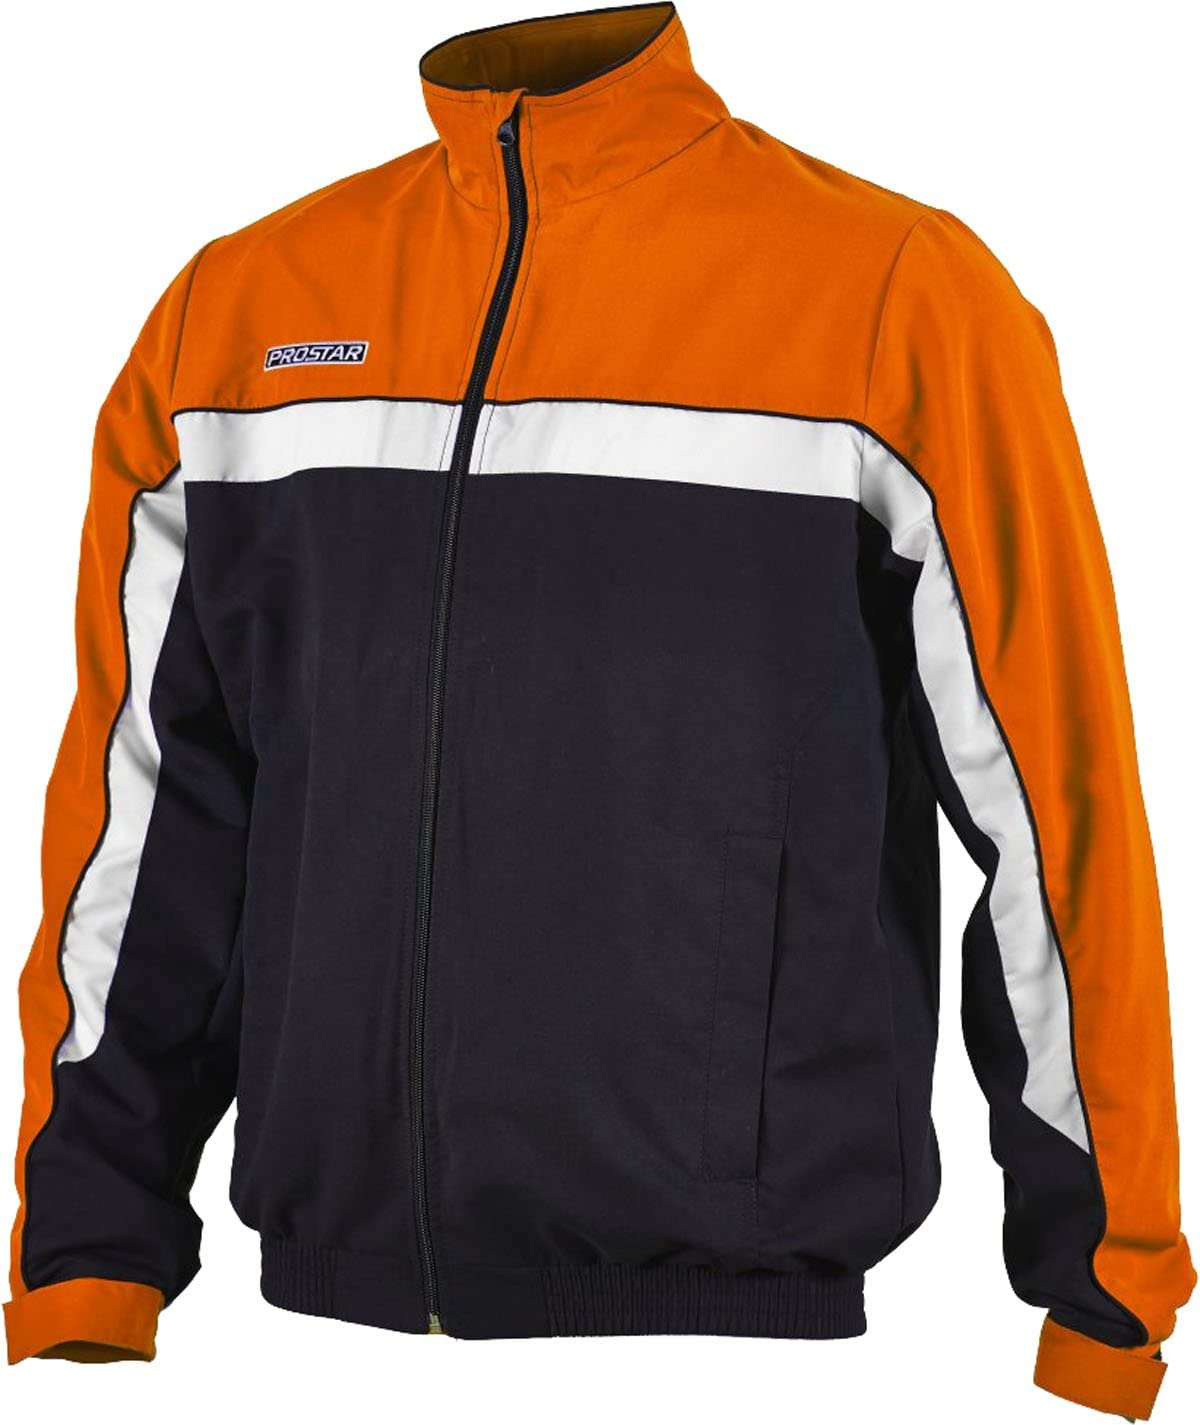 Prostar Lumino Jacket S Tangerine Black//White